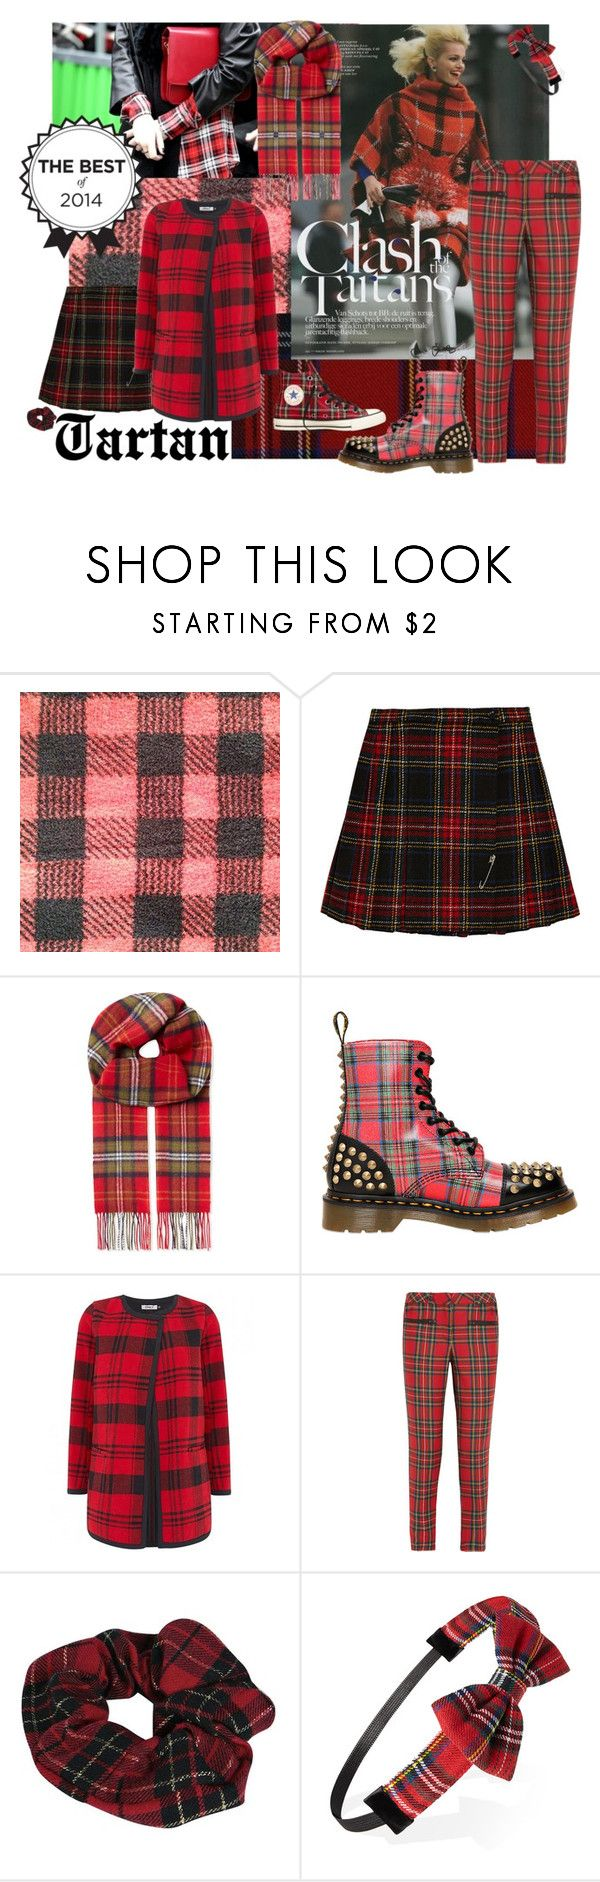 """Best of 2014: Tartan"" by alexosterberg ❤ liked on Polyvore featuring Yves Saint Laurent, Johnstons, Dr. Martens, Karl Lagerfeld, Boohoo, Fantasie and Forever 21"